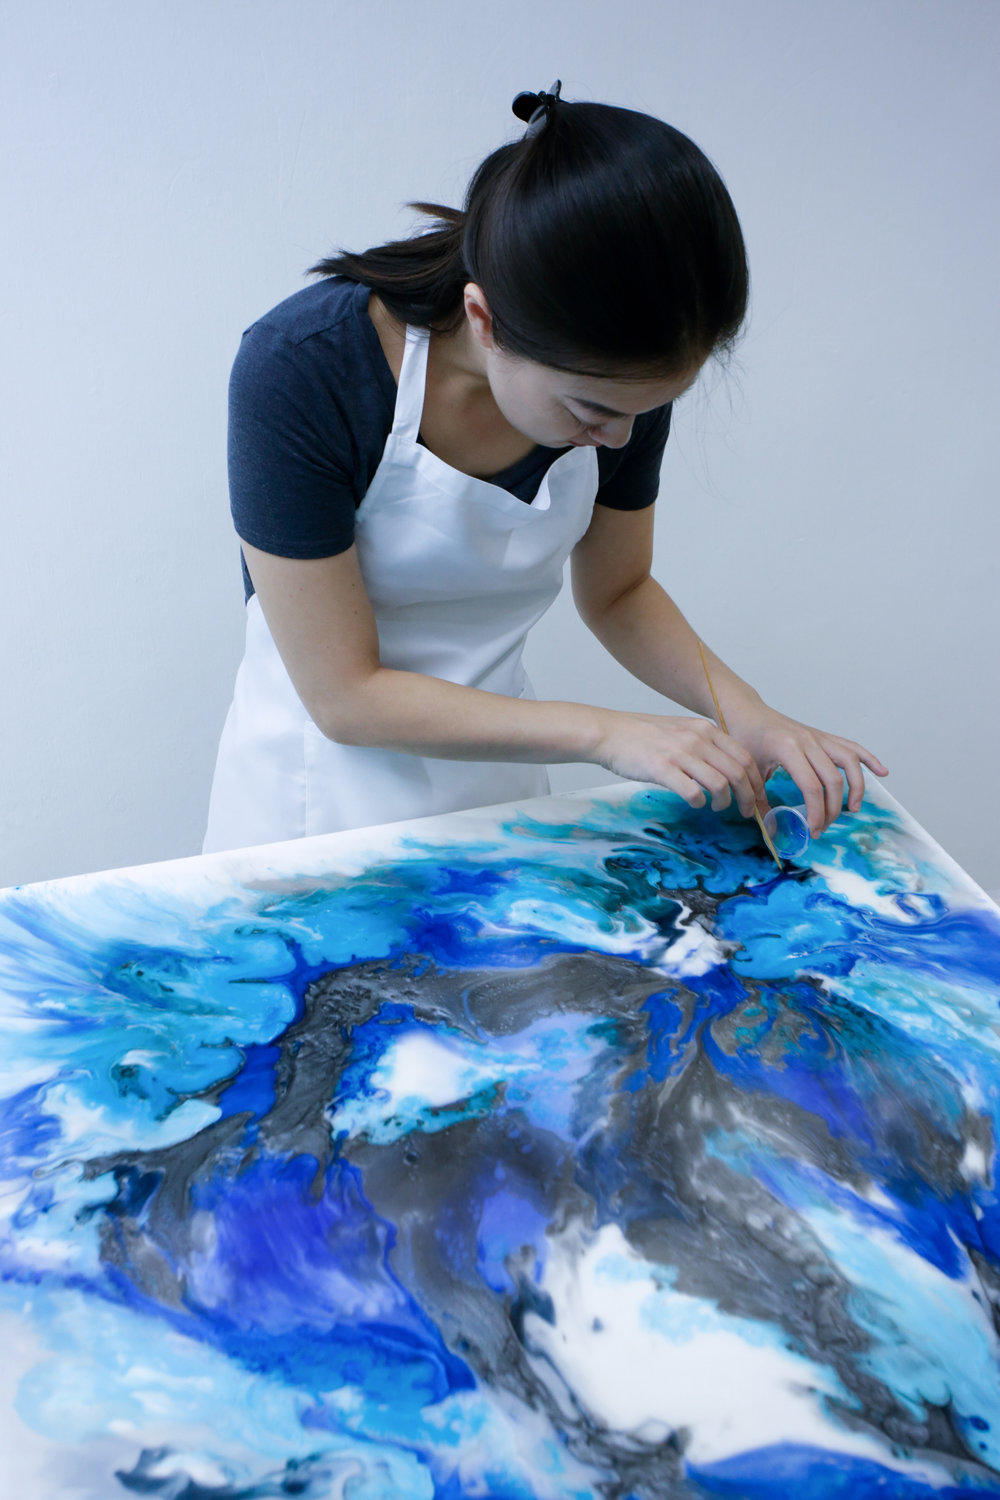 Mimi working on a Resin Canvas